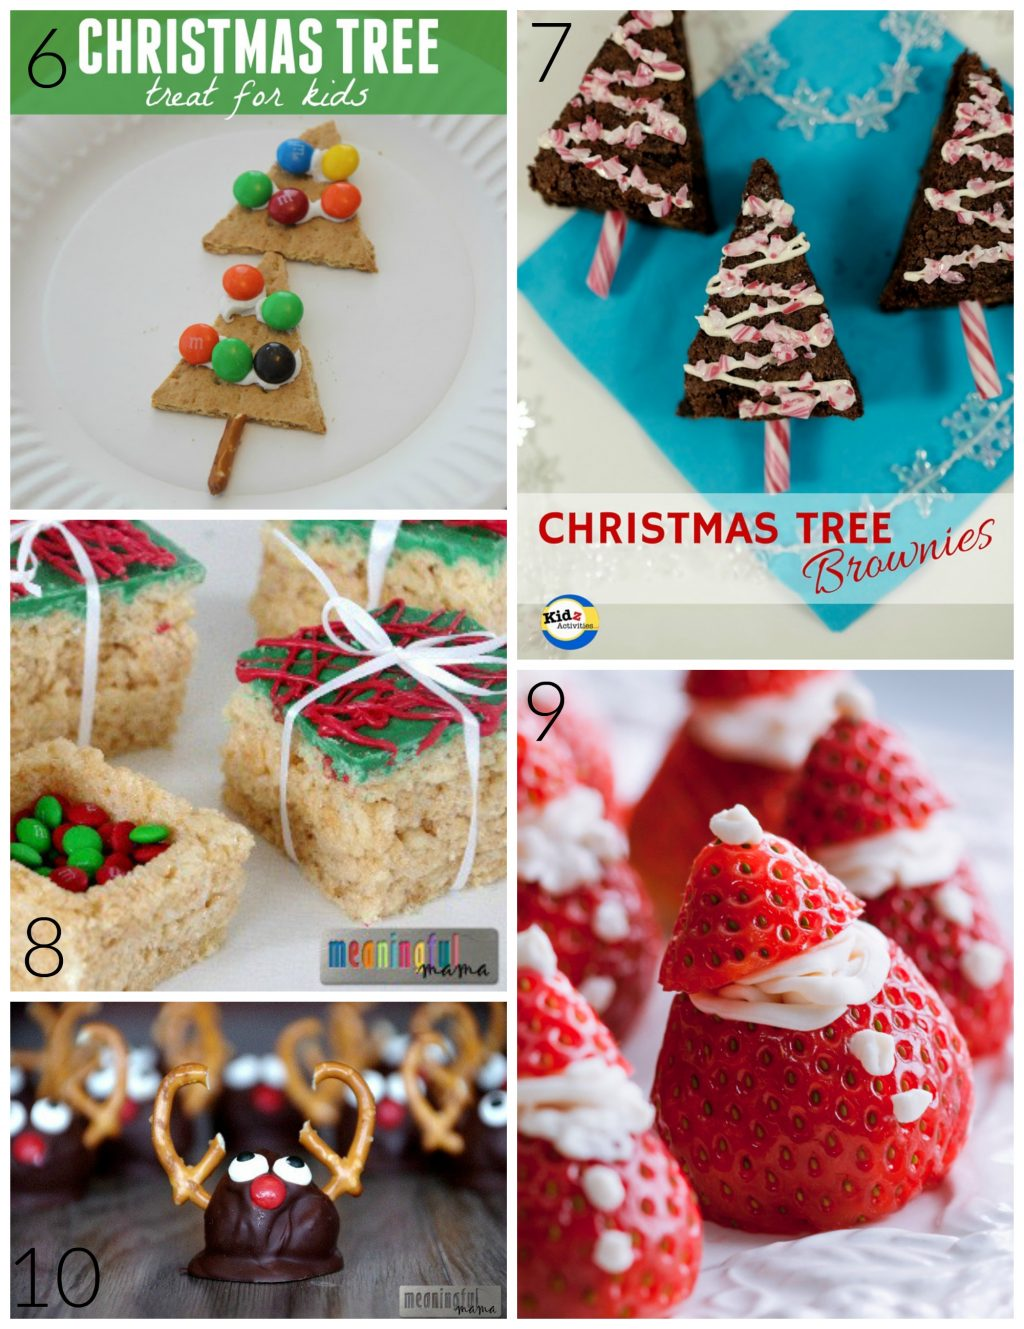 Top 10 Kid Made Treats for Christmas